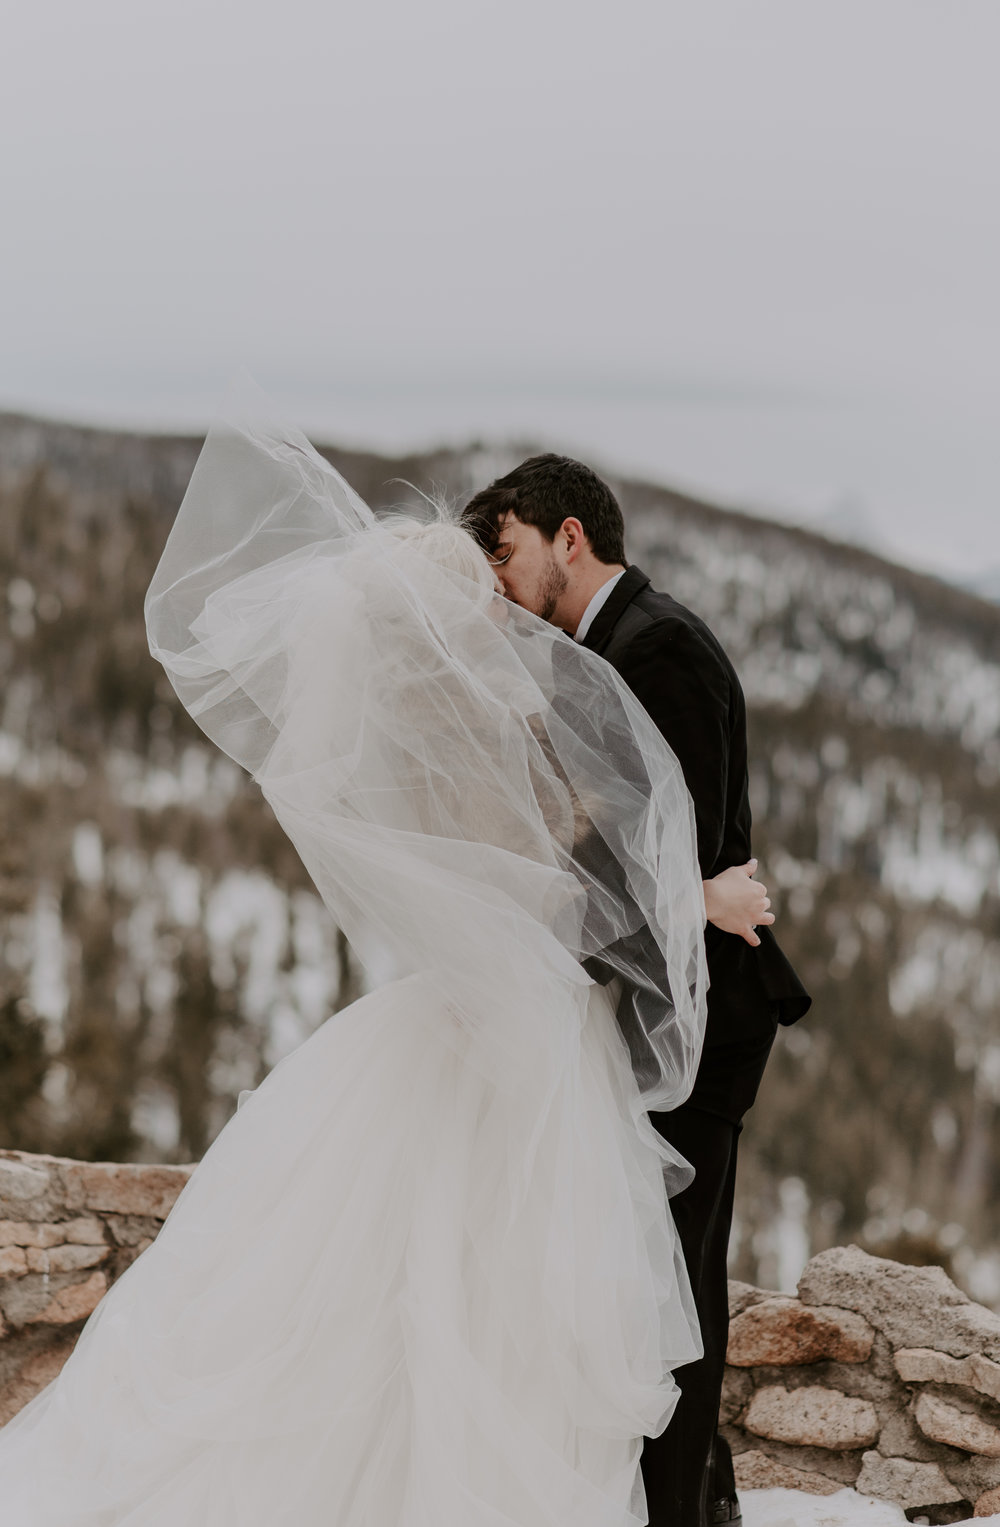 Mountain wedding photographer for adventurous couples in Colorado. Sapphire Point winter elopement photography.